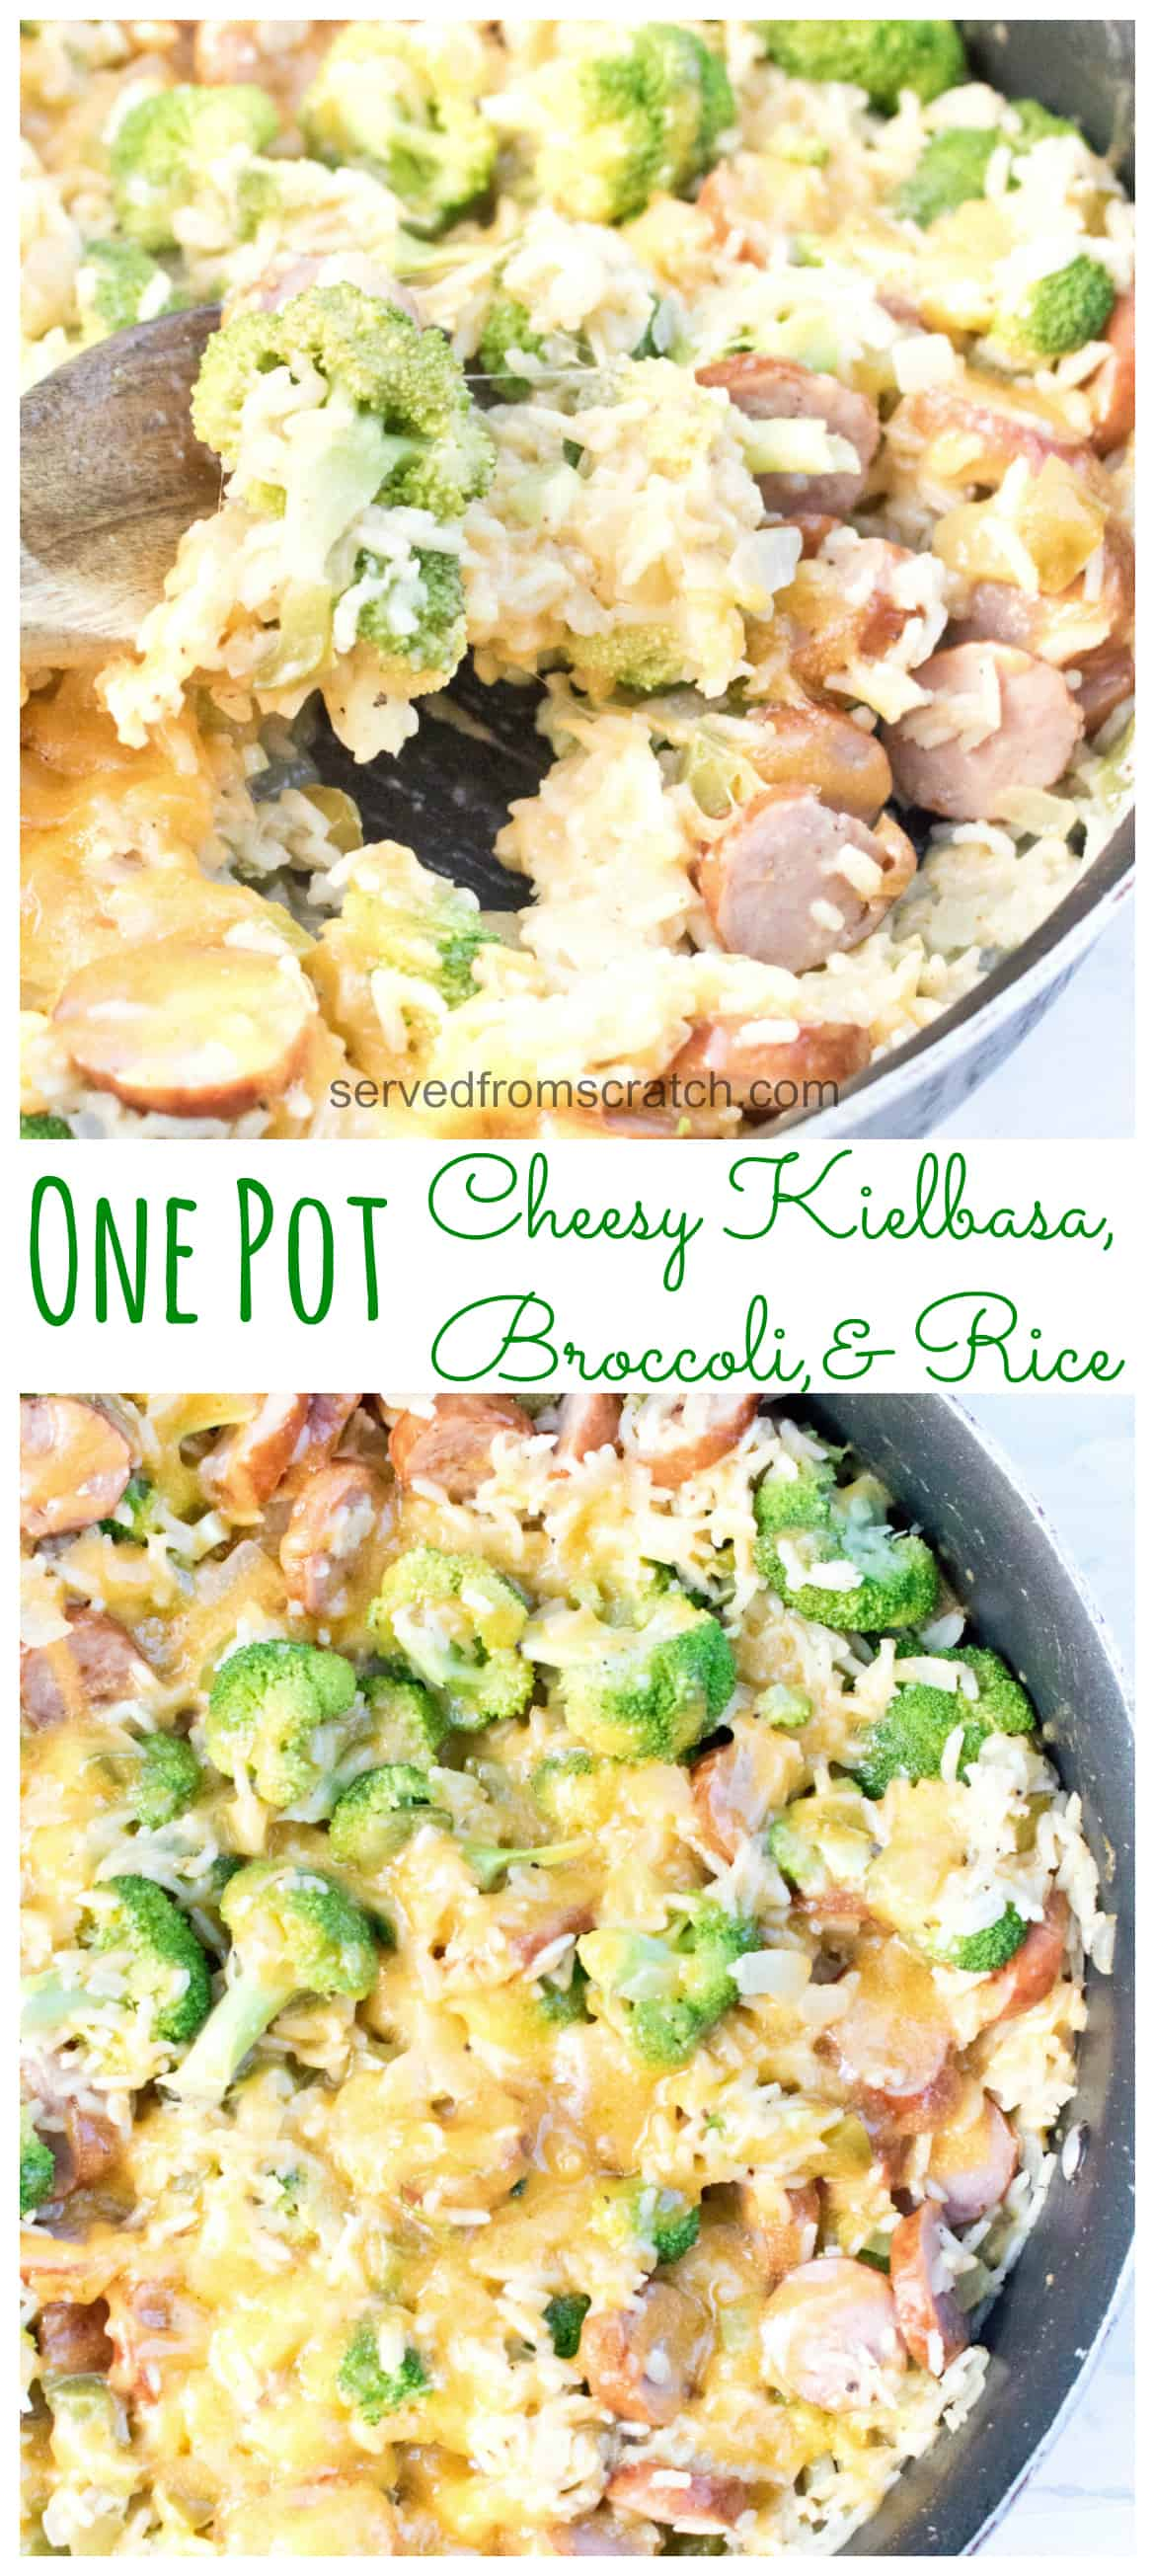 This One Pot Cheesy Kielbasa, Broccoli, and Rice is not only fast and easy to prep, make, AND clean up after, but it's a delicious weeknight dinner, too!